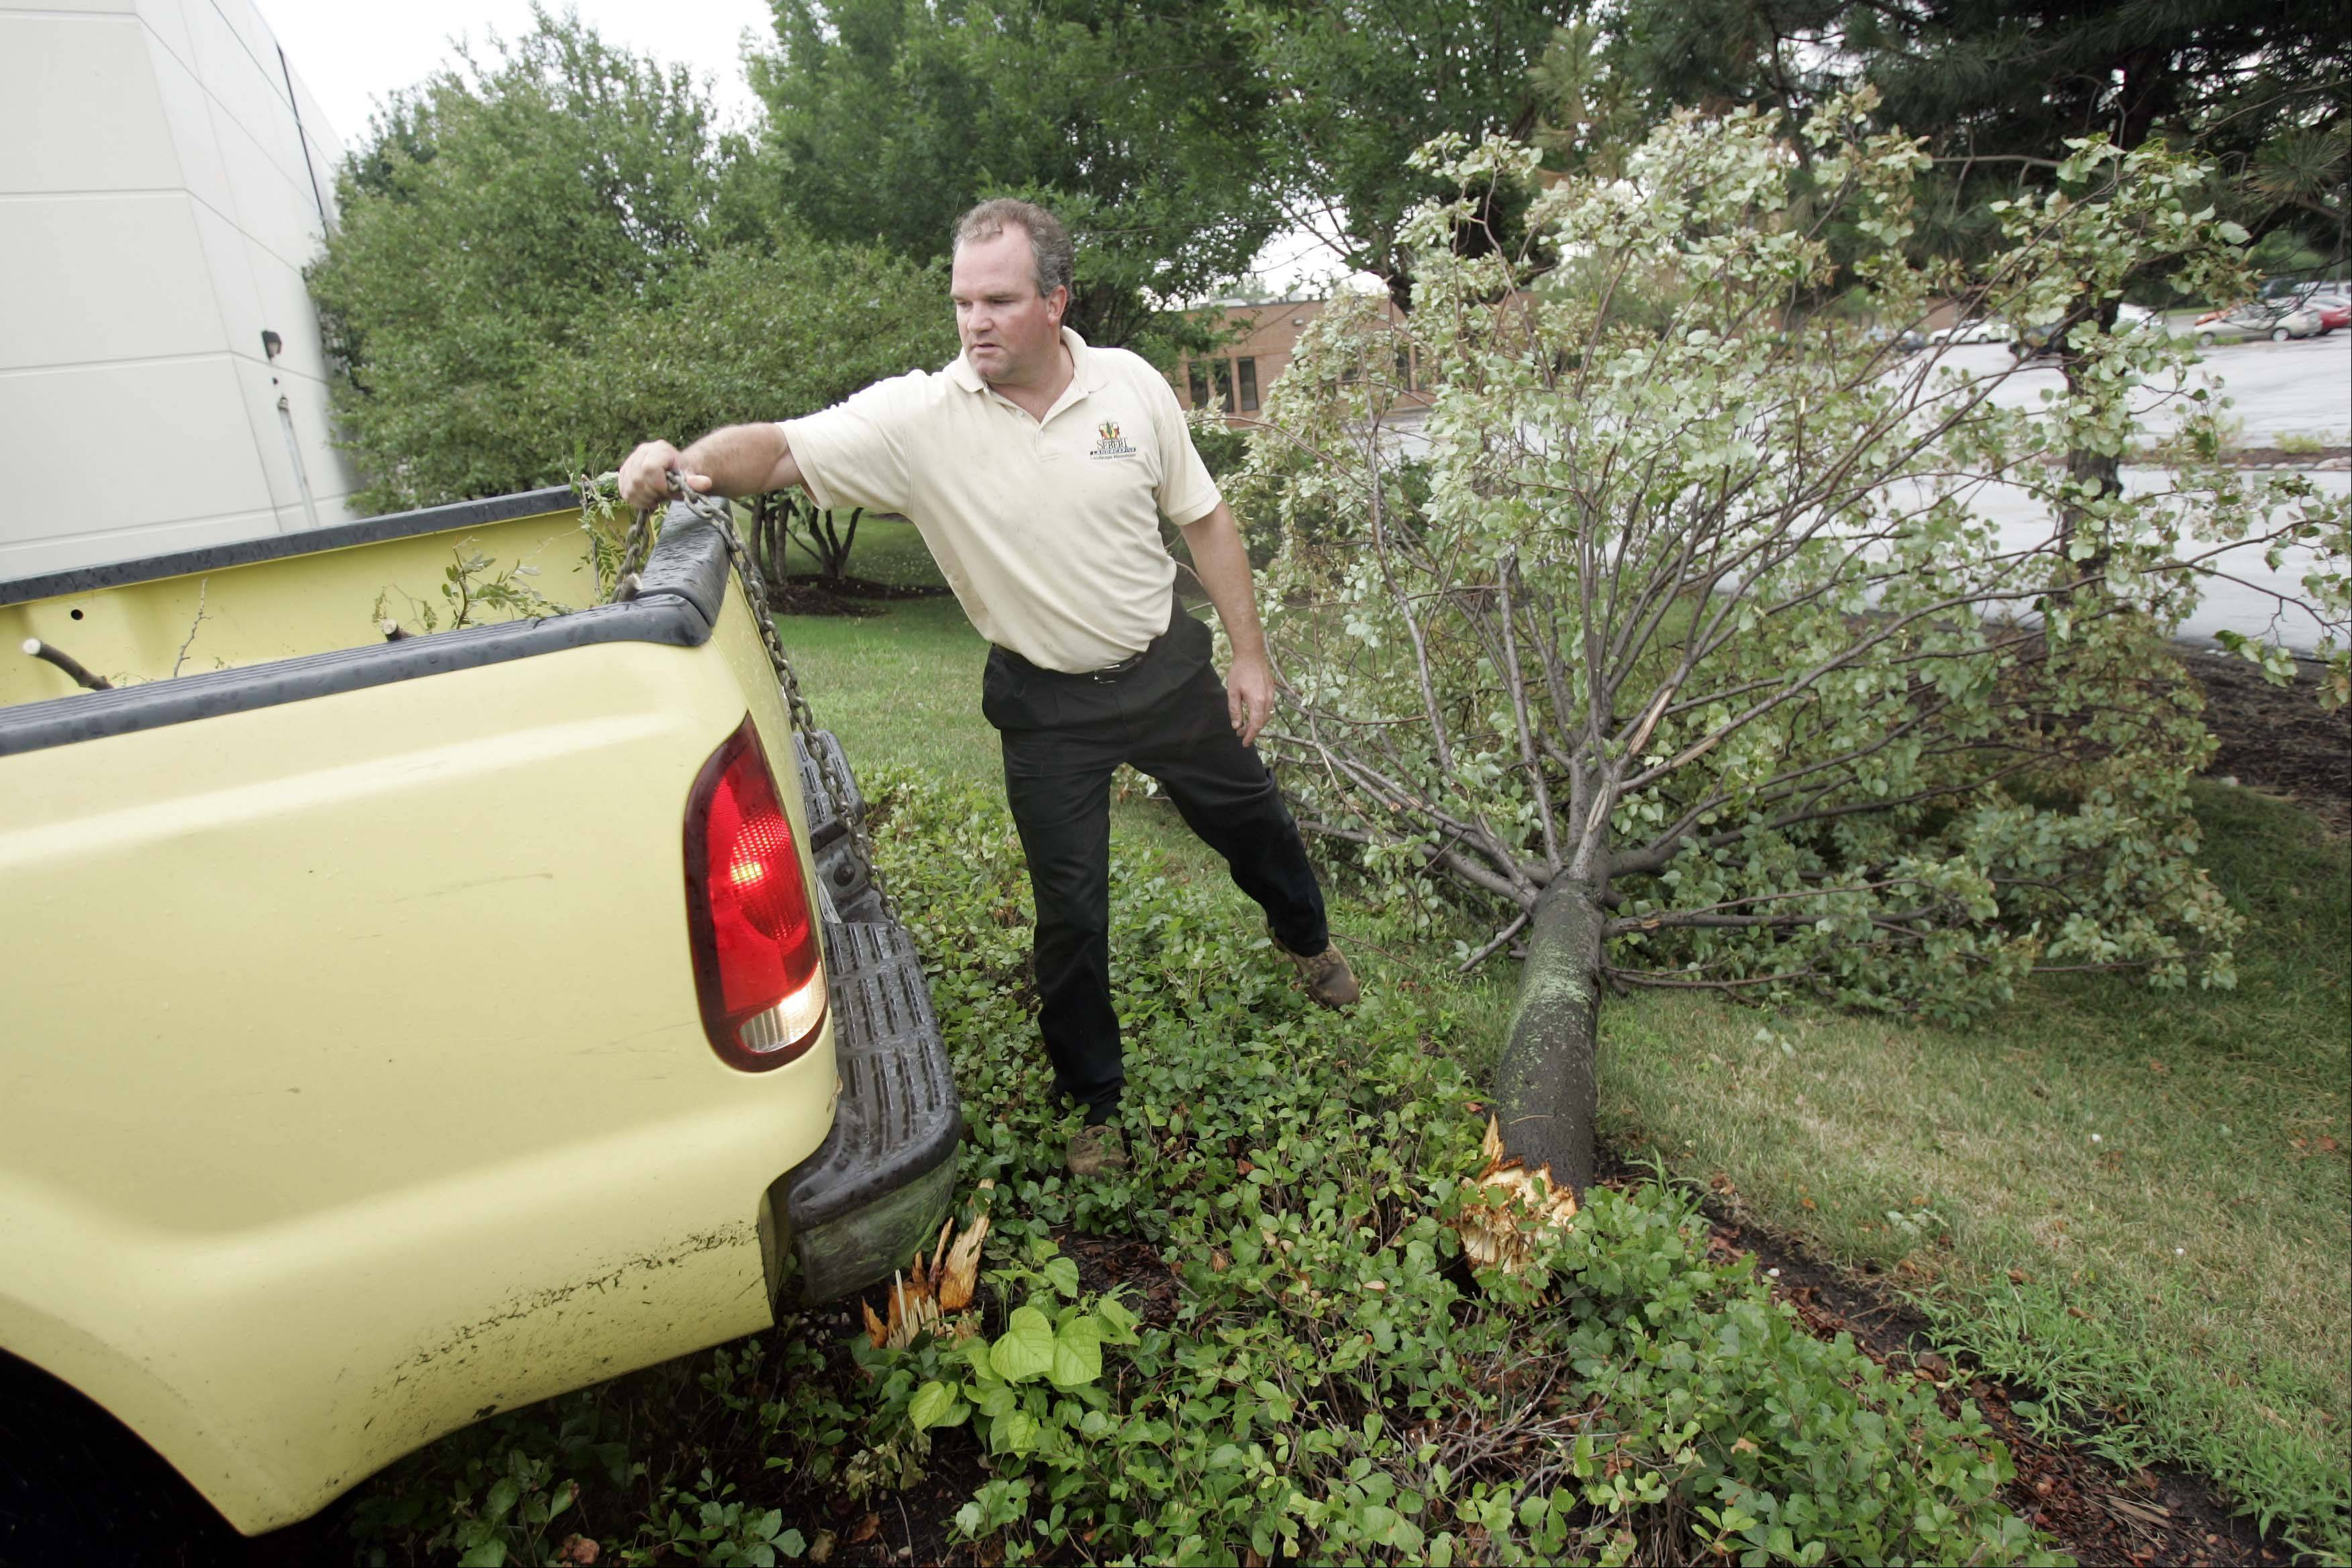 Bob Nelson of Sebert Landscaping Co. prepares to hook up a chain to remove one of the downed trees at an industrial park in Carol Stream Thursday.